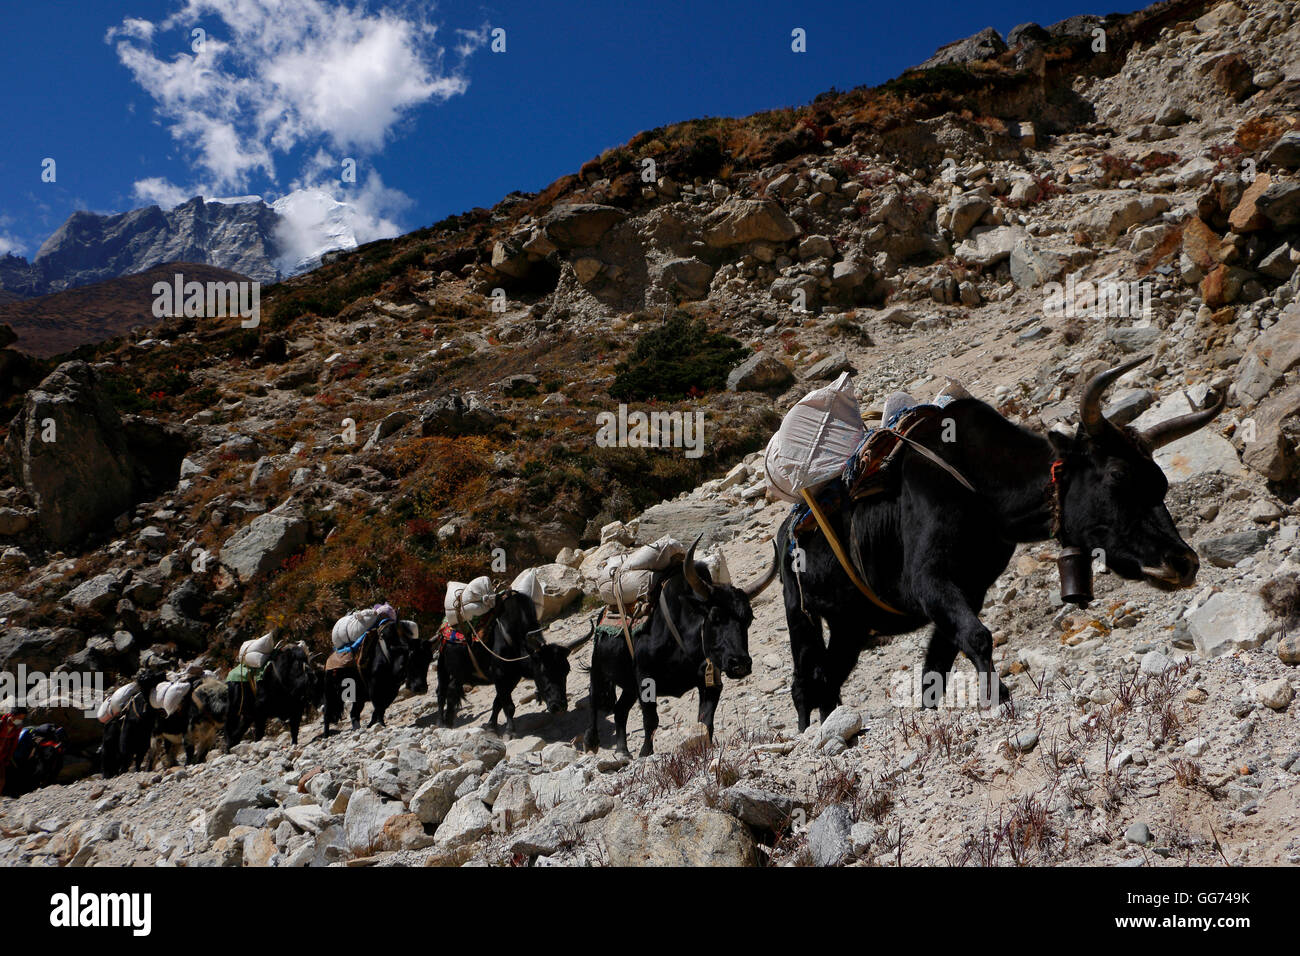 Yaks train on route to Dingboche - Stock Image